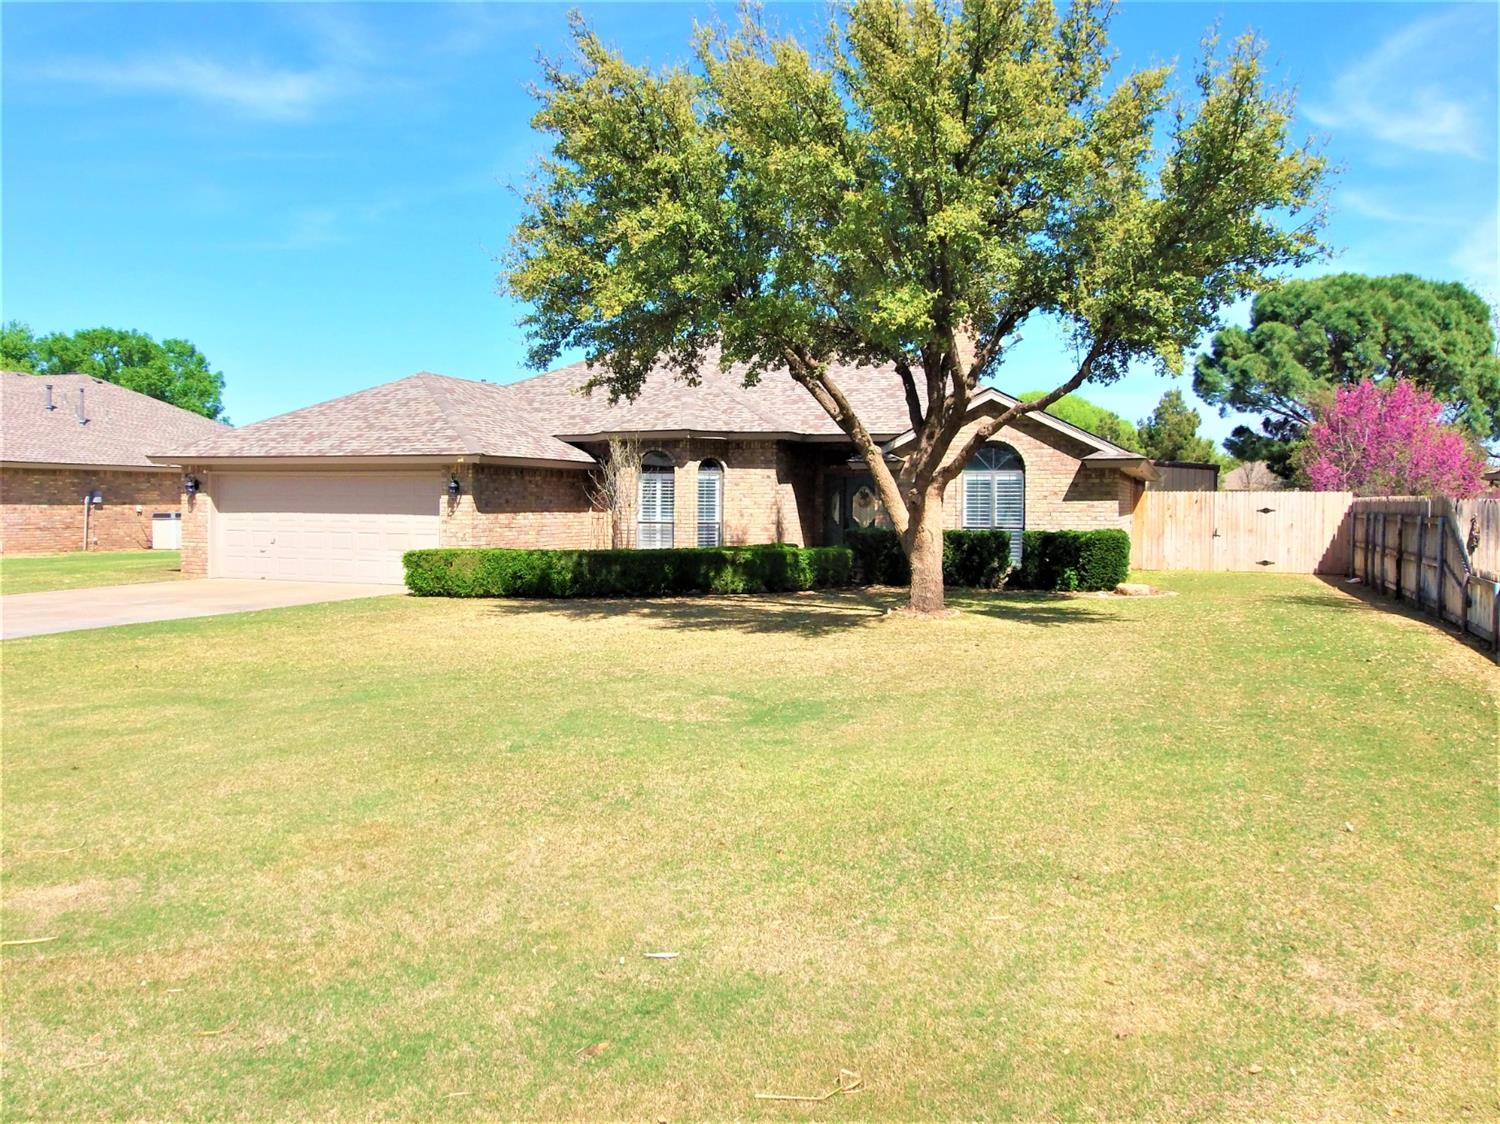 Take a look at this beautiful, 4 bed, 3 bath home on 1/2 Acre with a POOL, SHOP(24x30), and BASEMENT all in Frenship ISD!  Situated on a low-traffic street, you have all the benefits of a country property in the city limits!  Updated inside and out! Carpet 1 yr old, Plank flooring 3 yrs old. New Roof in November 2019. Nest and 4 wired cameras convey.